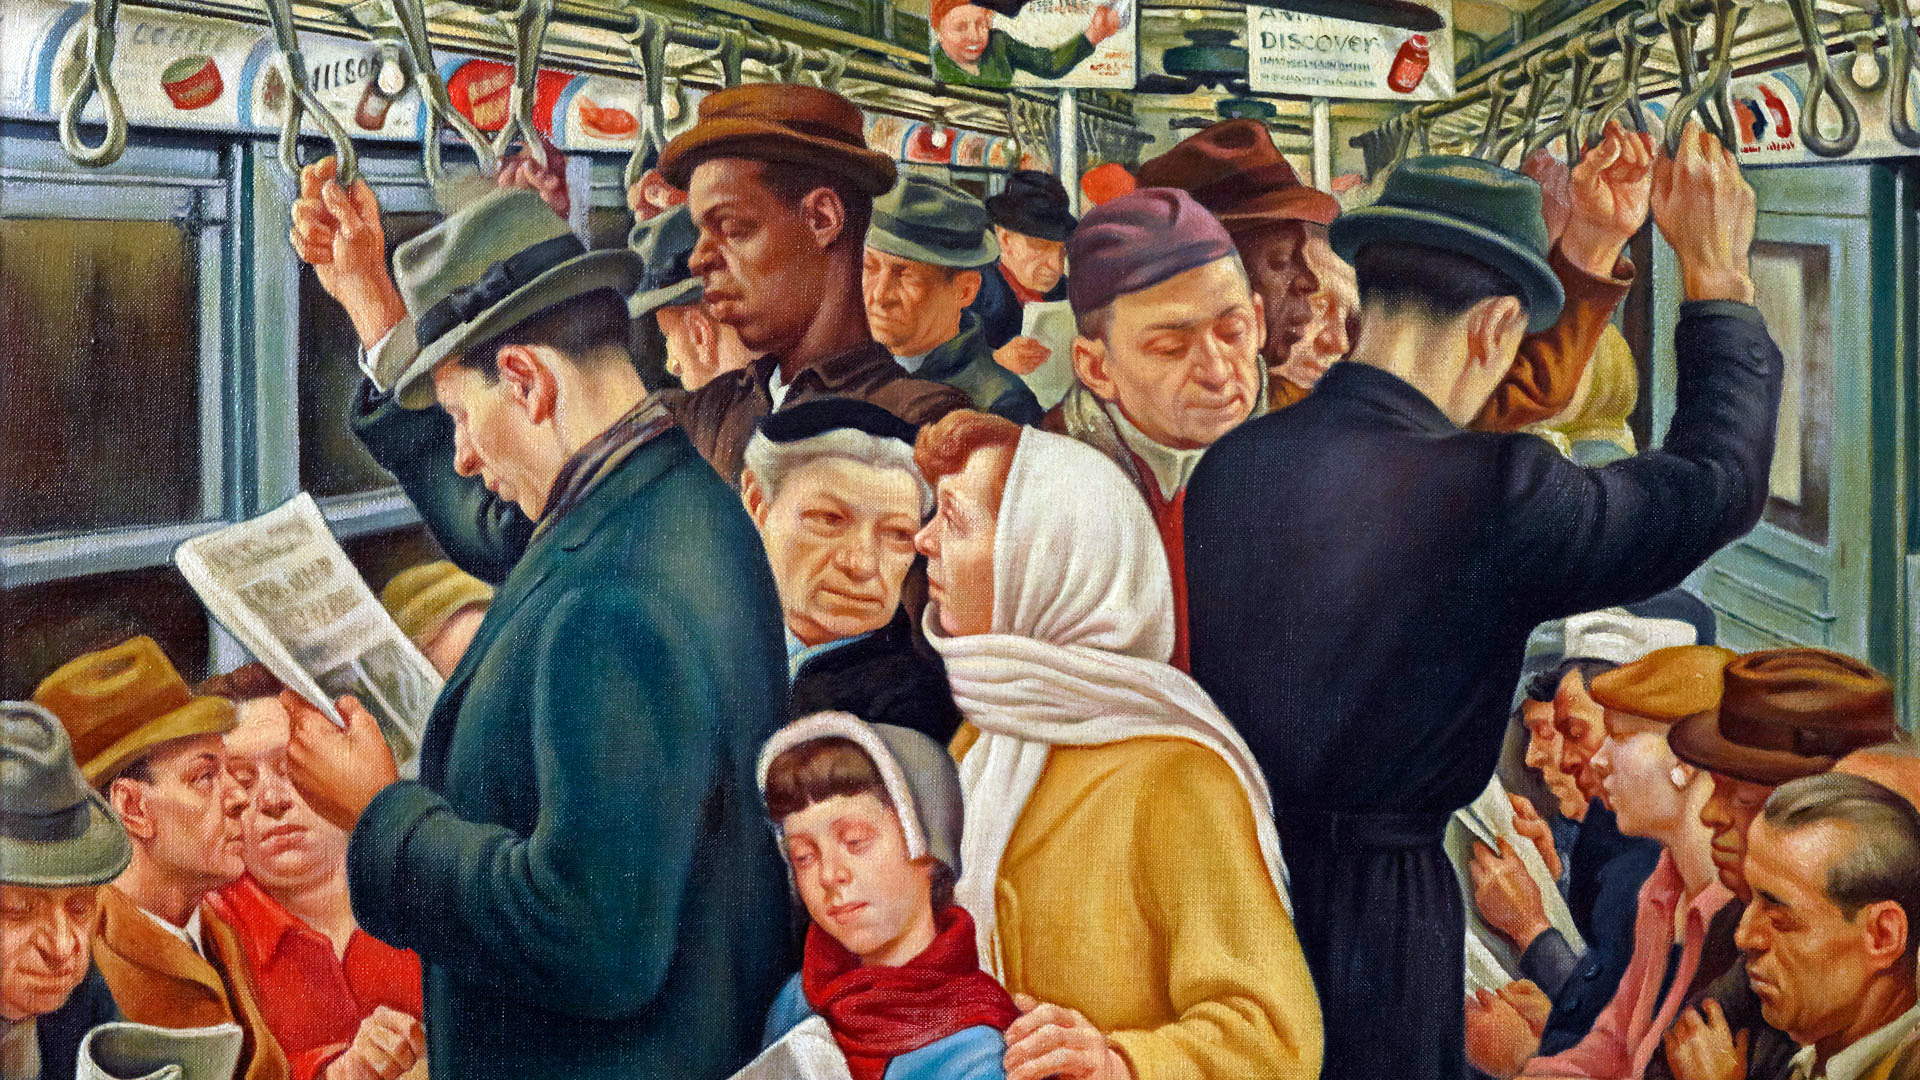 Painting of a crowded subway train